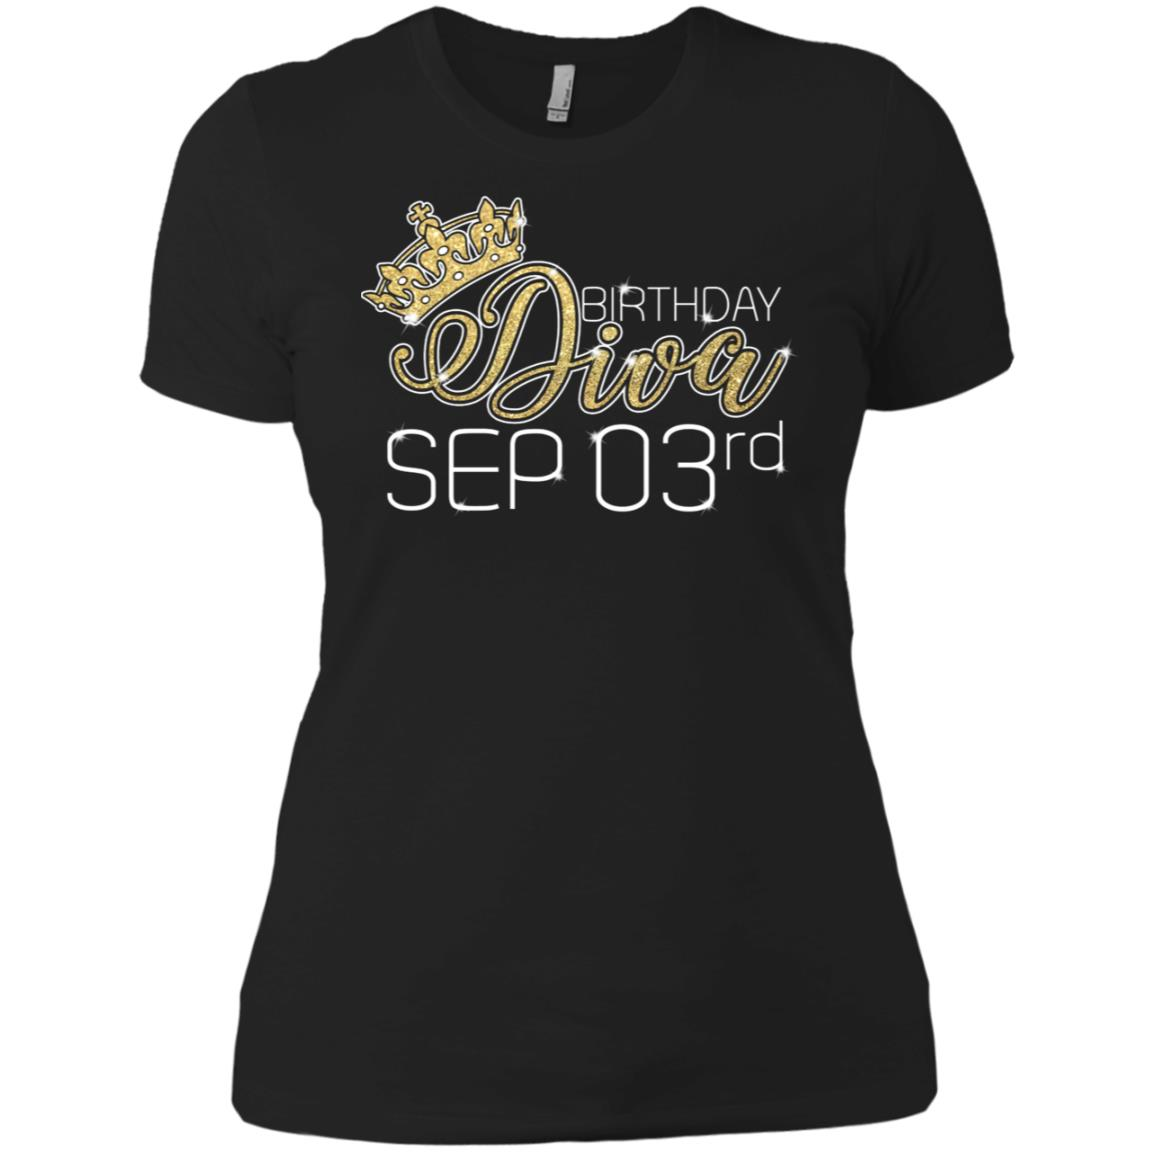 Birthday Diva on September 3rd Virgo Pri Women Short Sleeve